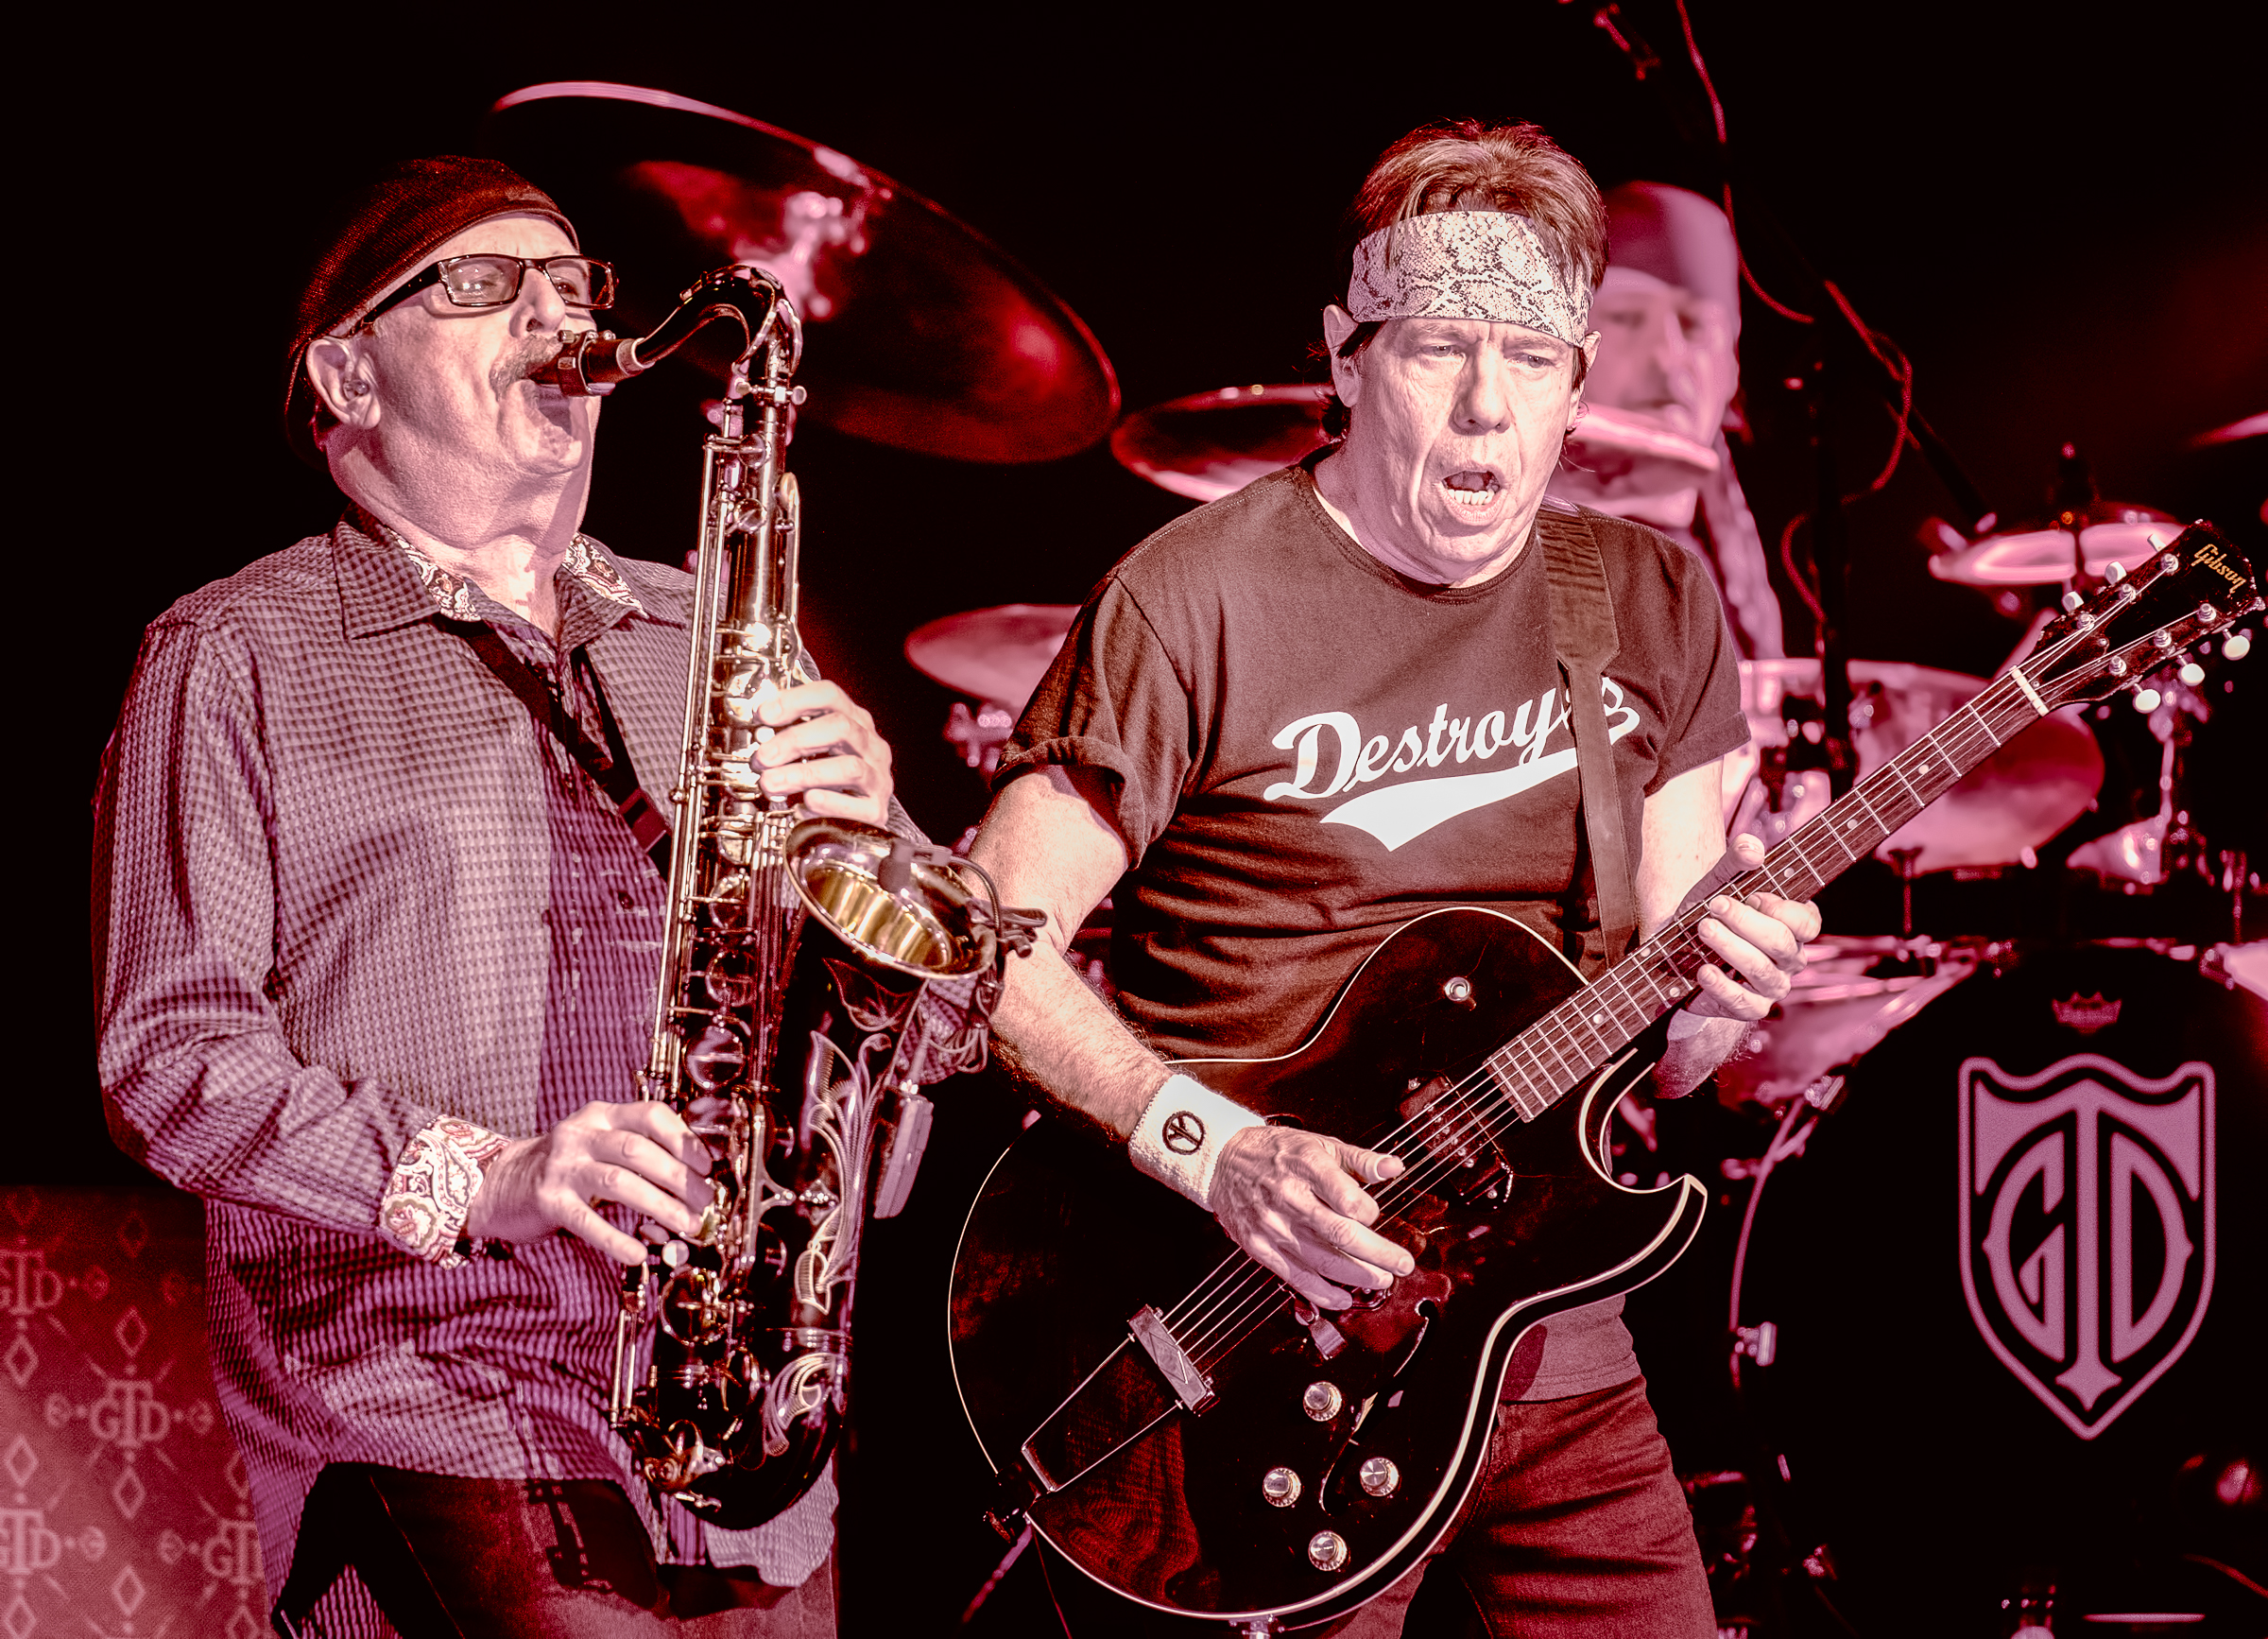 James Leach And George Thorogood With The Destroyers At The Montreal International Jazz Festival 2018